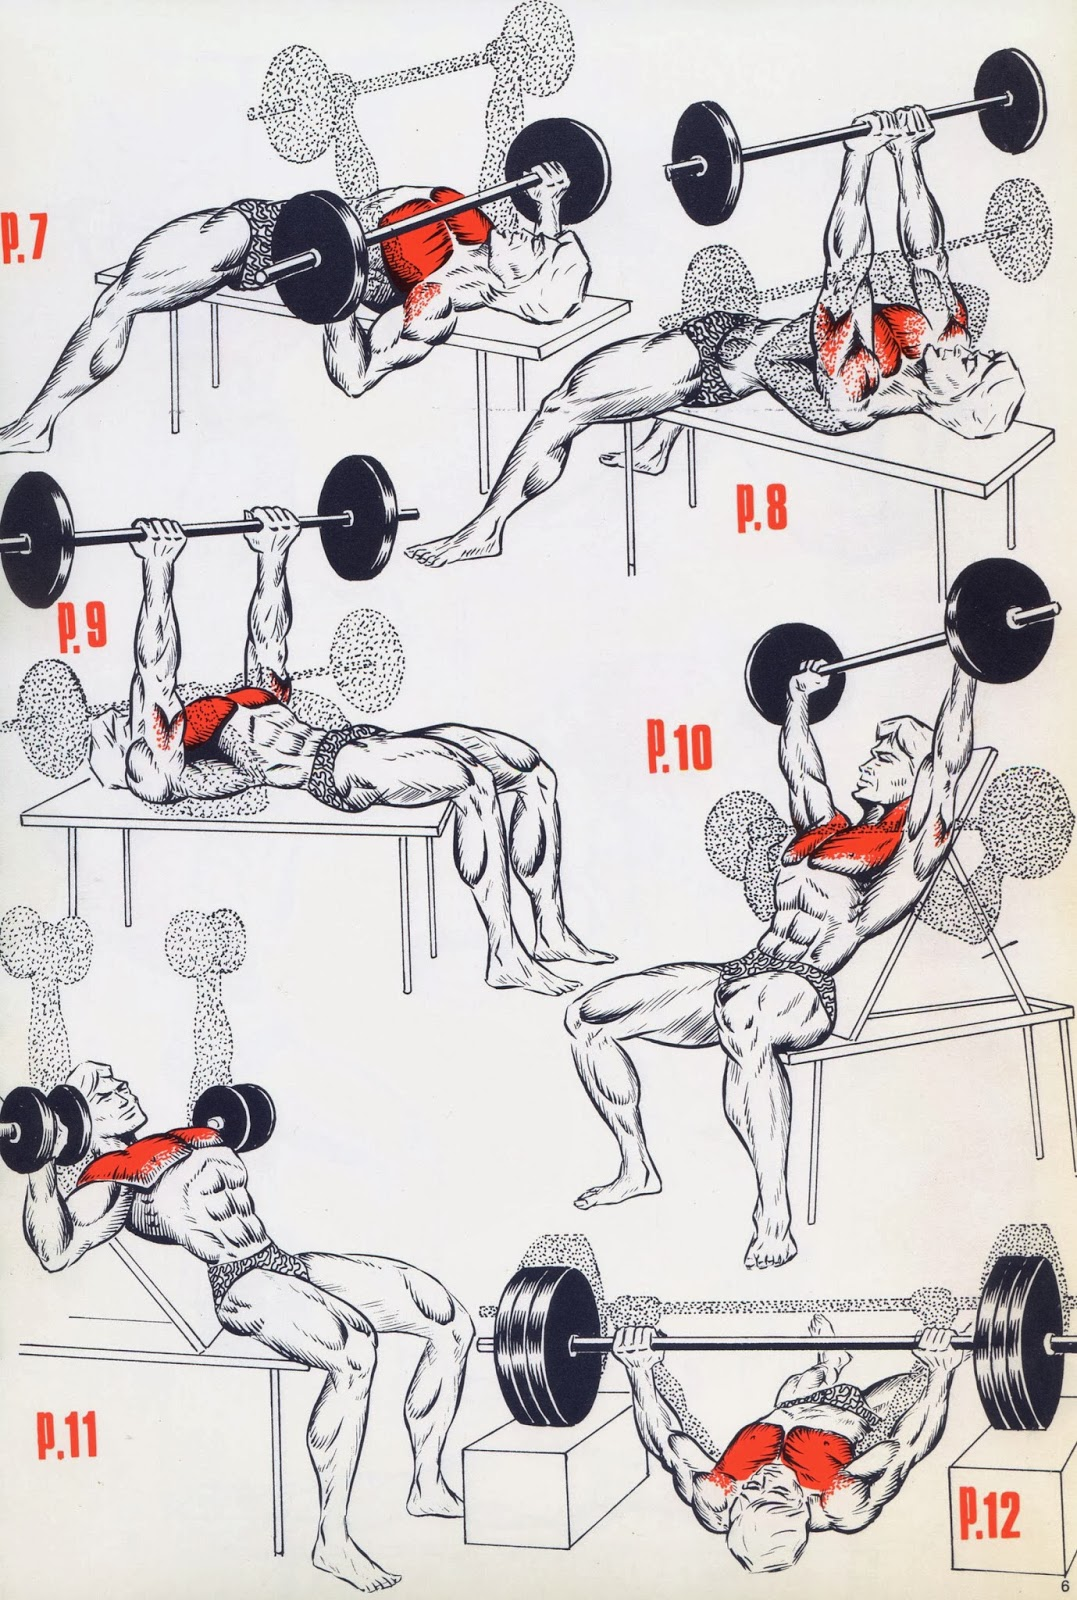 Gym Workout Chart For Chest For Men This A Simple Exercises For The Begining 39s Bodybuilding